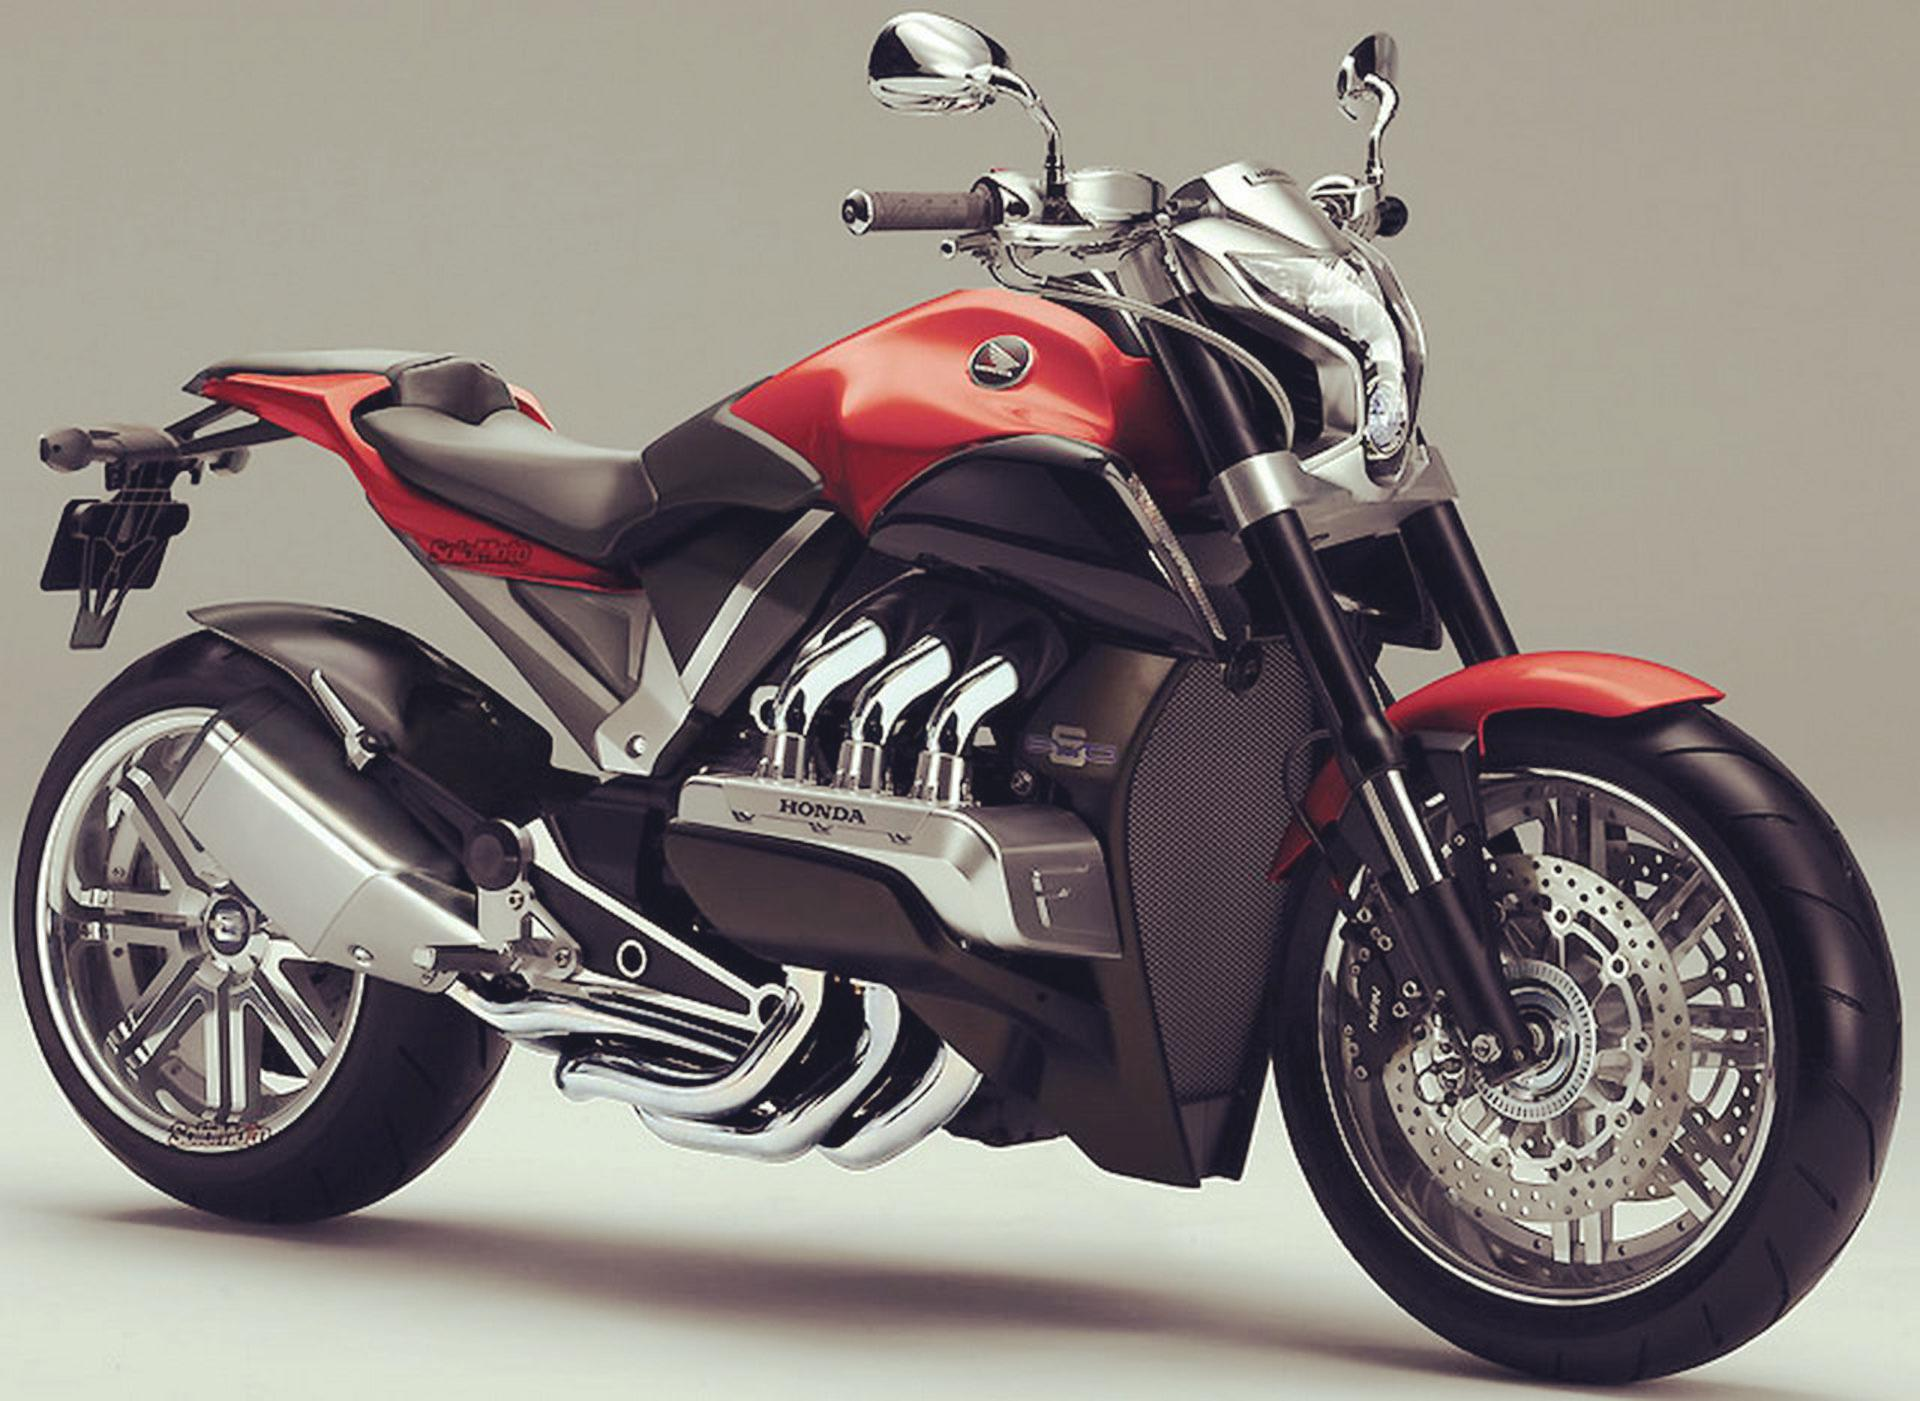 Honda Gold Wing F6C 2015 images #83213